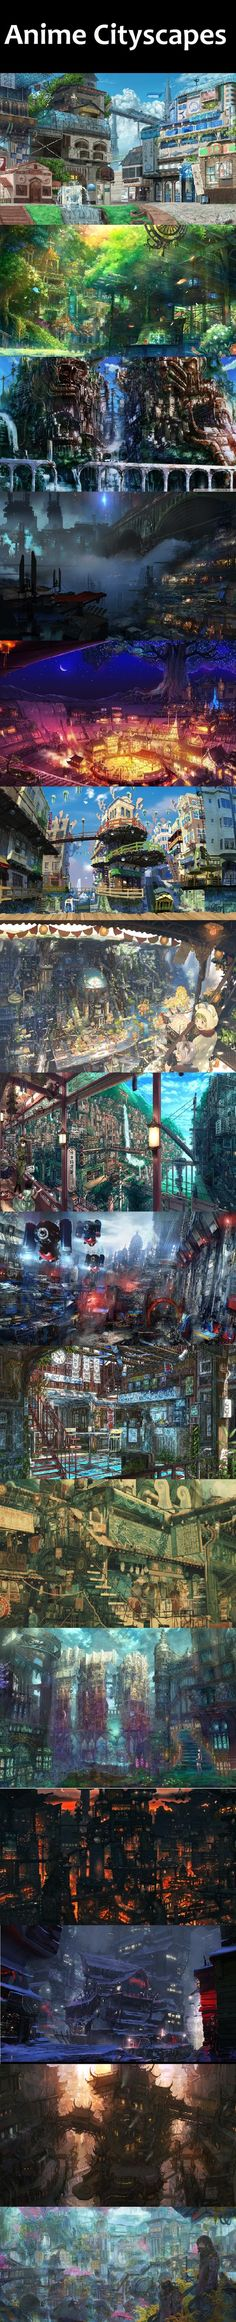 Anime Cityscapes